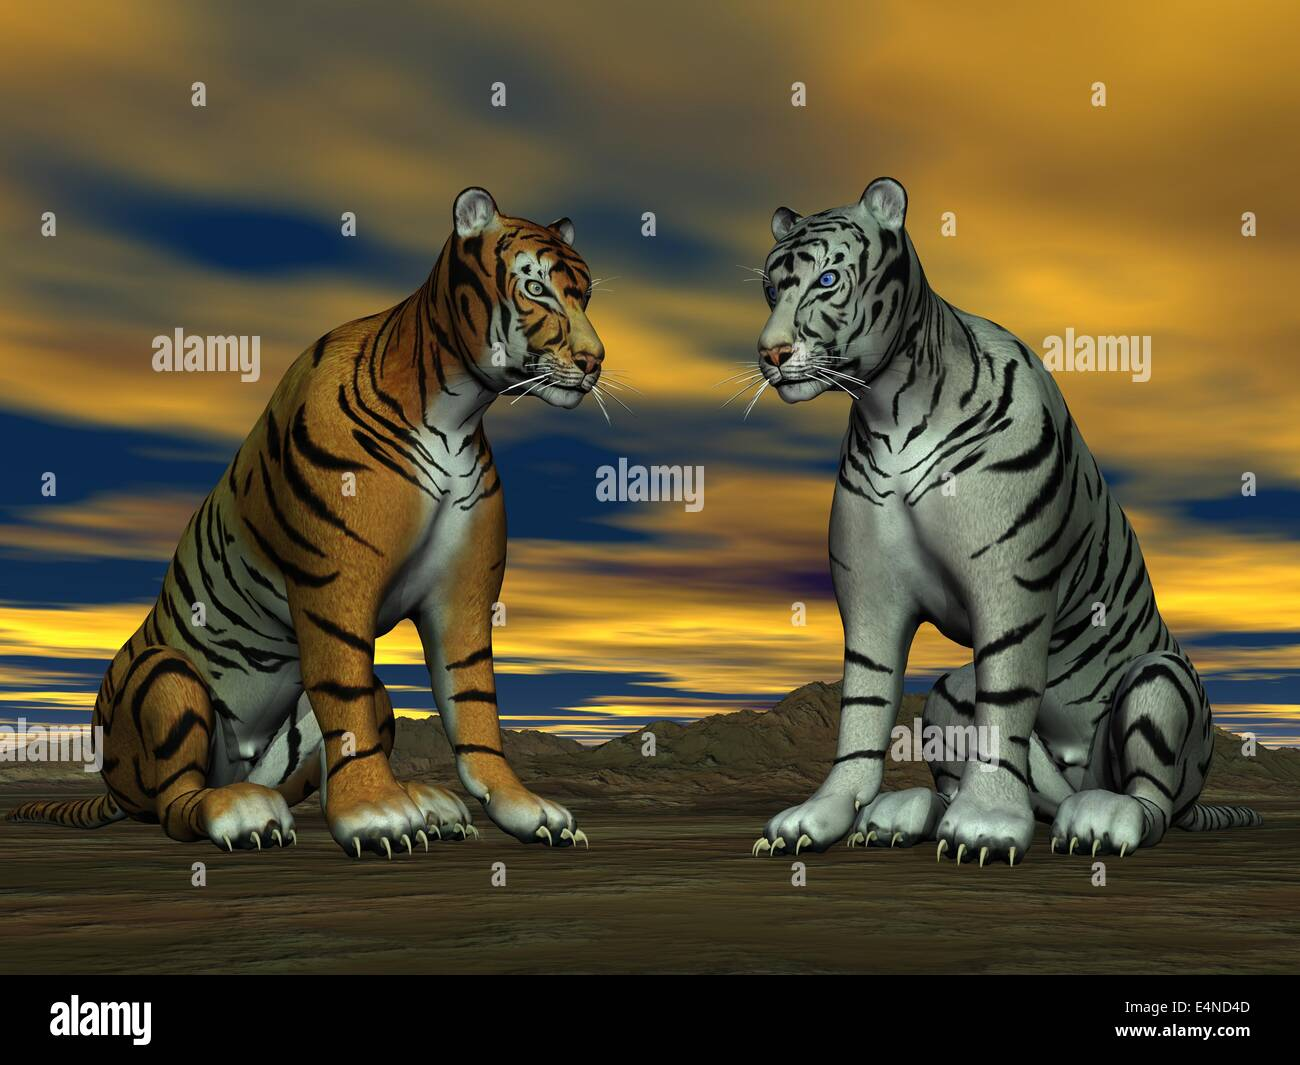 two 3d tigers stock photos & two 3d tigers stock images - alamy